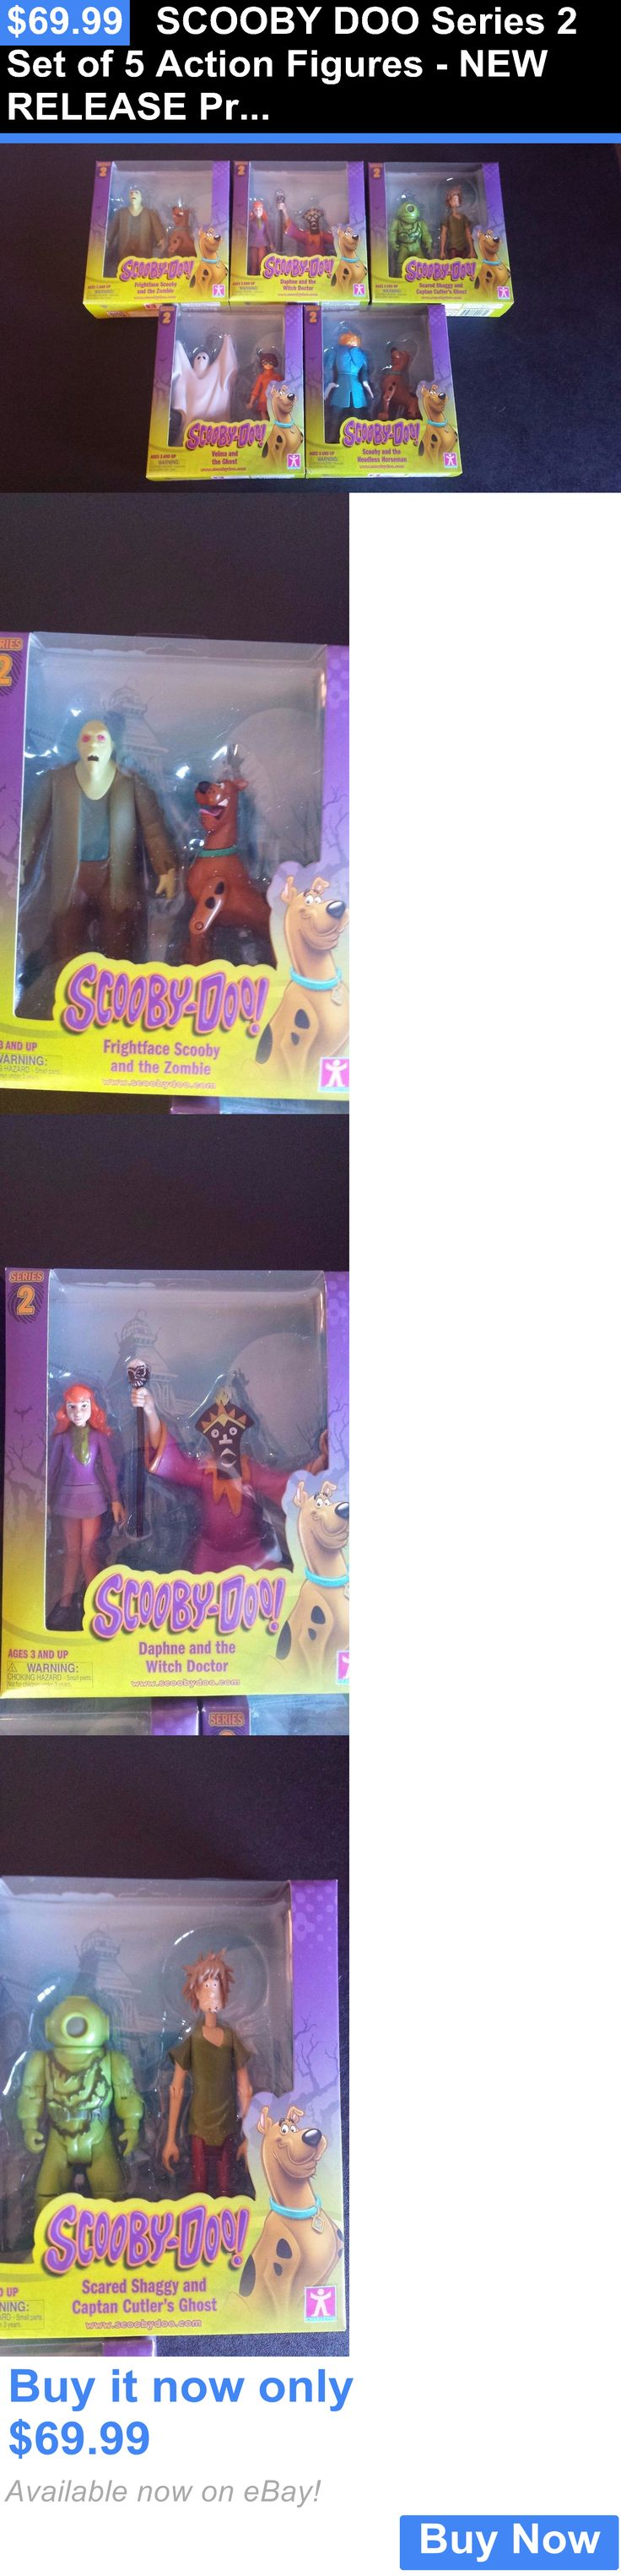 Toys And Games: Scooby Doo Series 2 Set Of 5 Action Figures - New Release Priority Shipping BUY IT NOW ONLY: $69.99